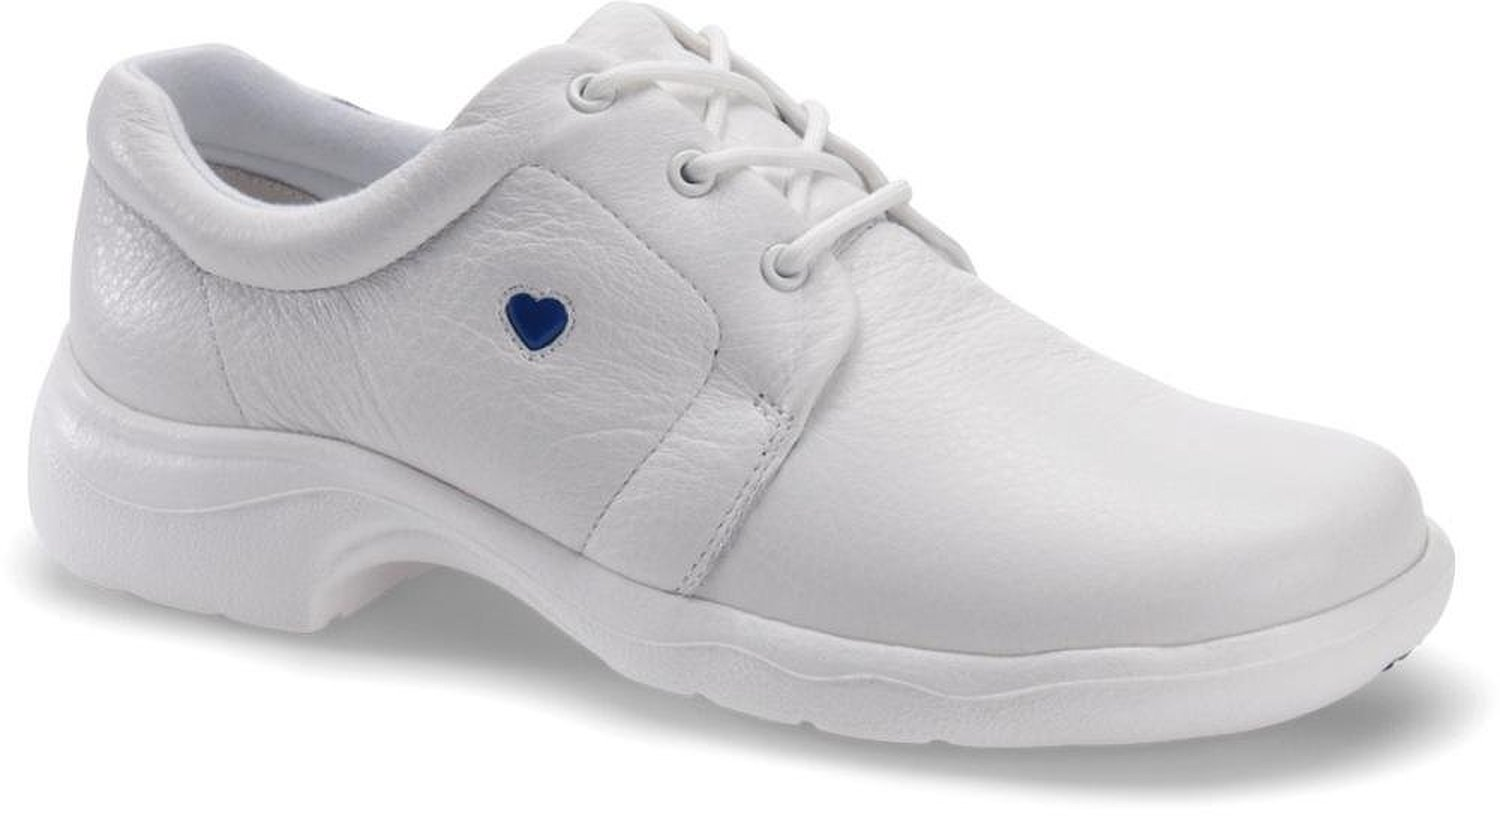 Nurse Mates Women's Angel Lace-up Shoes